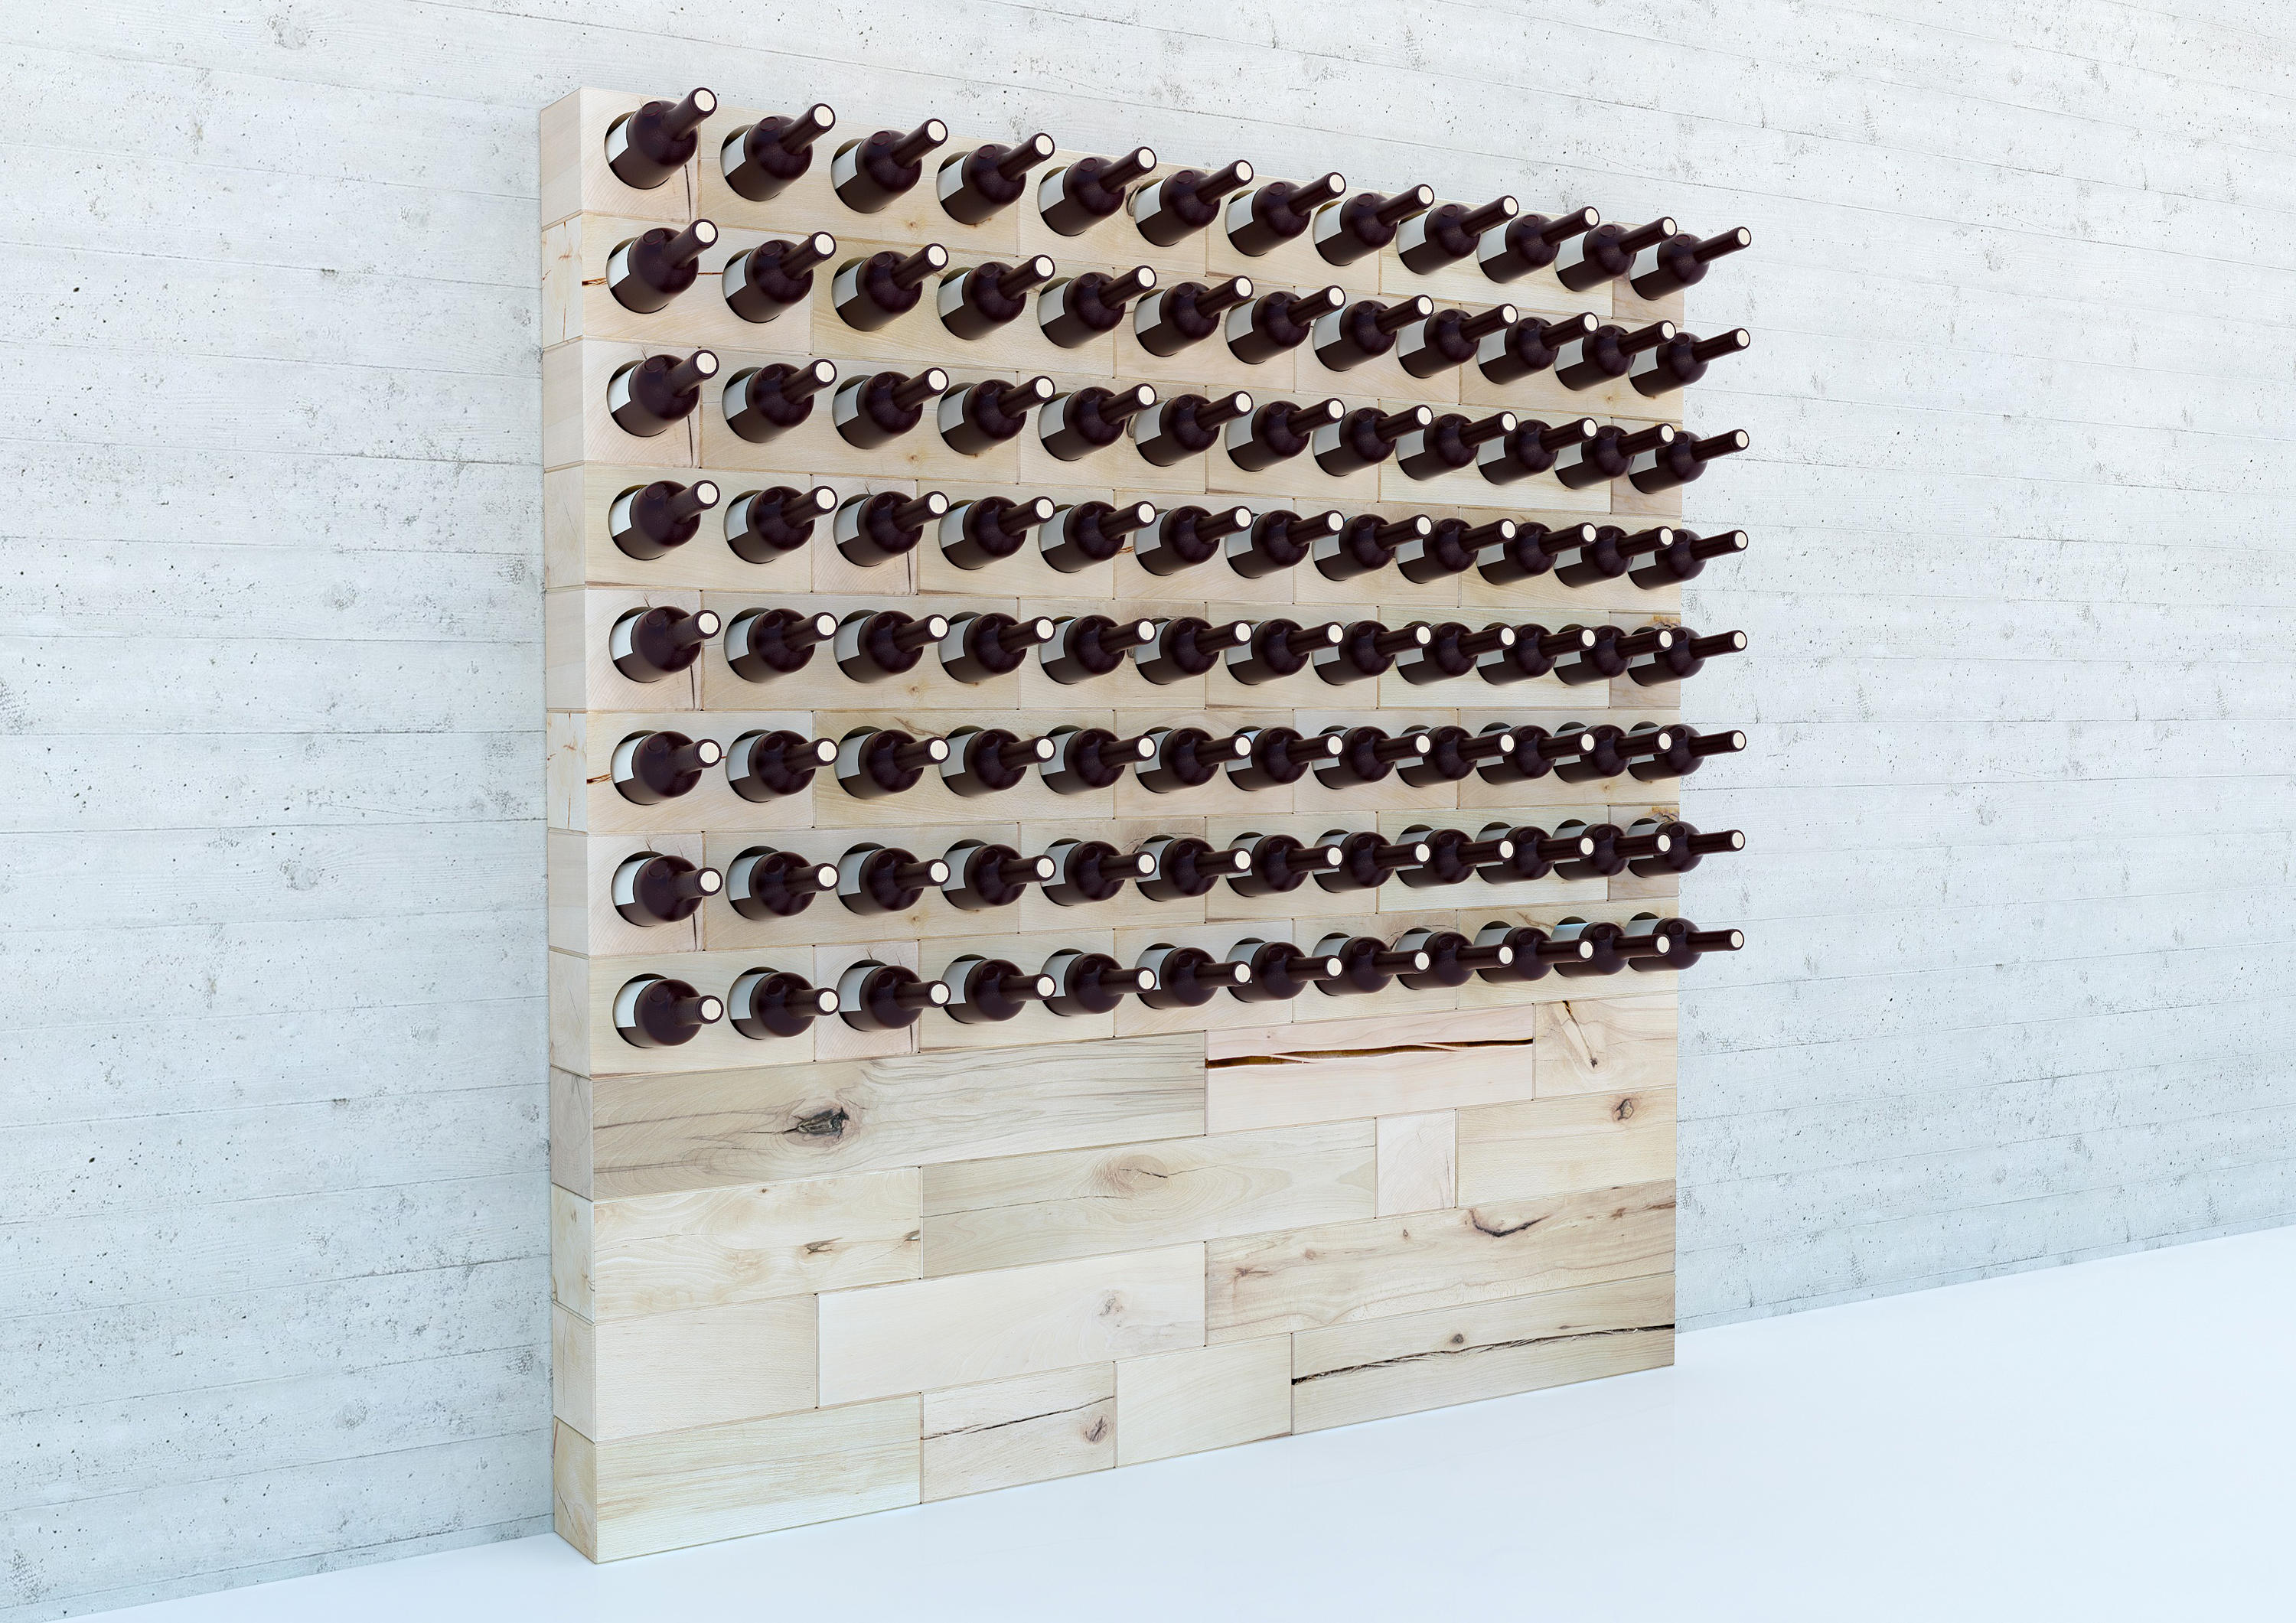 Craftwand wine rack design shelving from